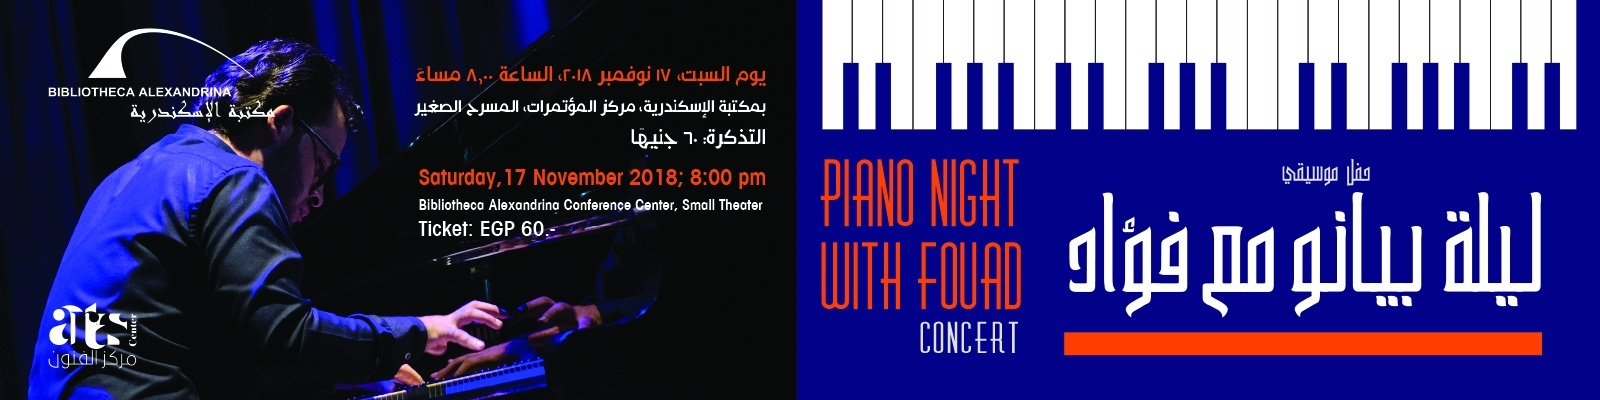 Concert: Piano Night with Fouad